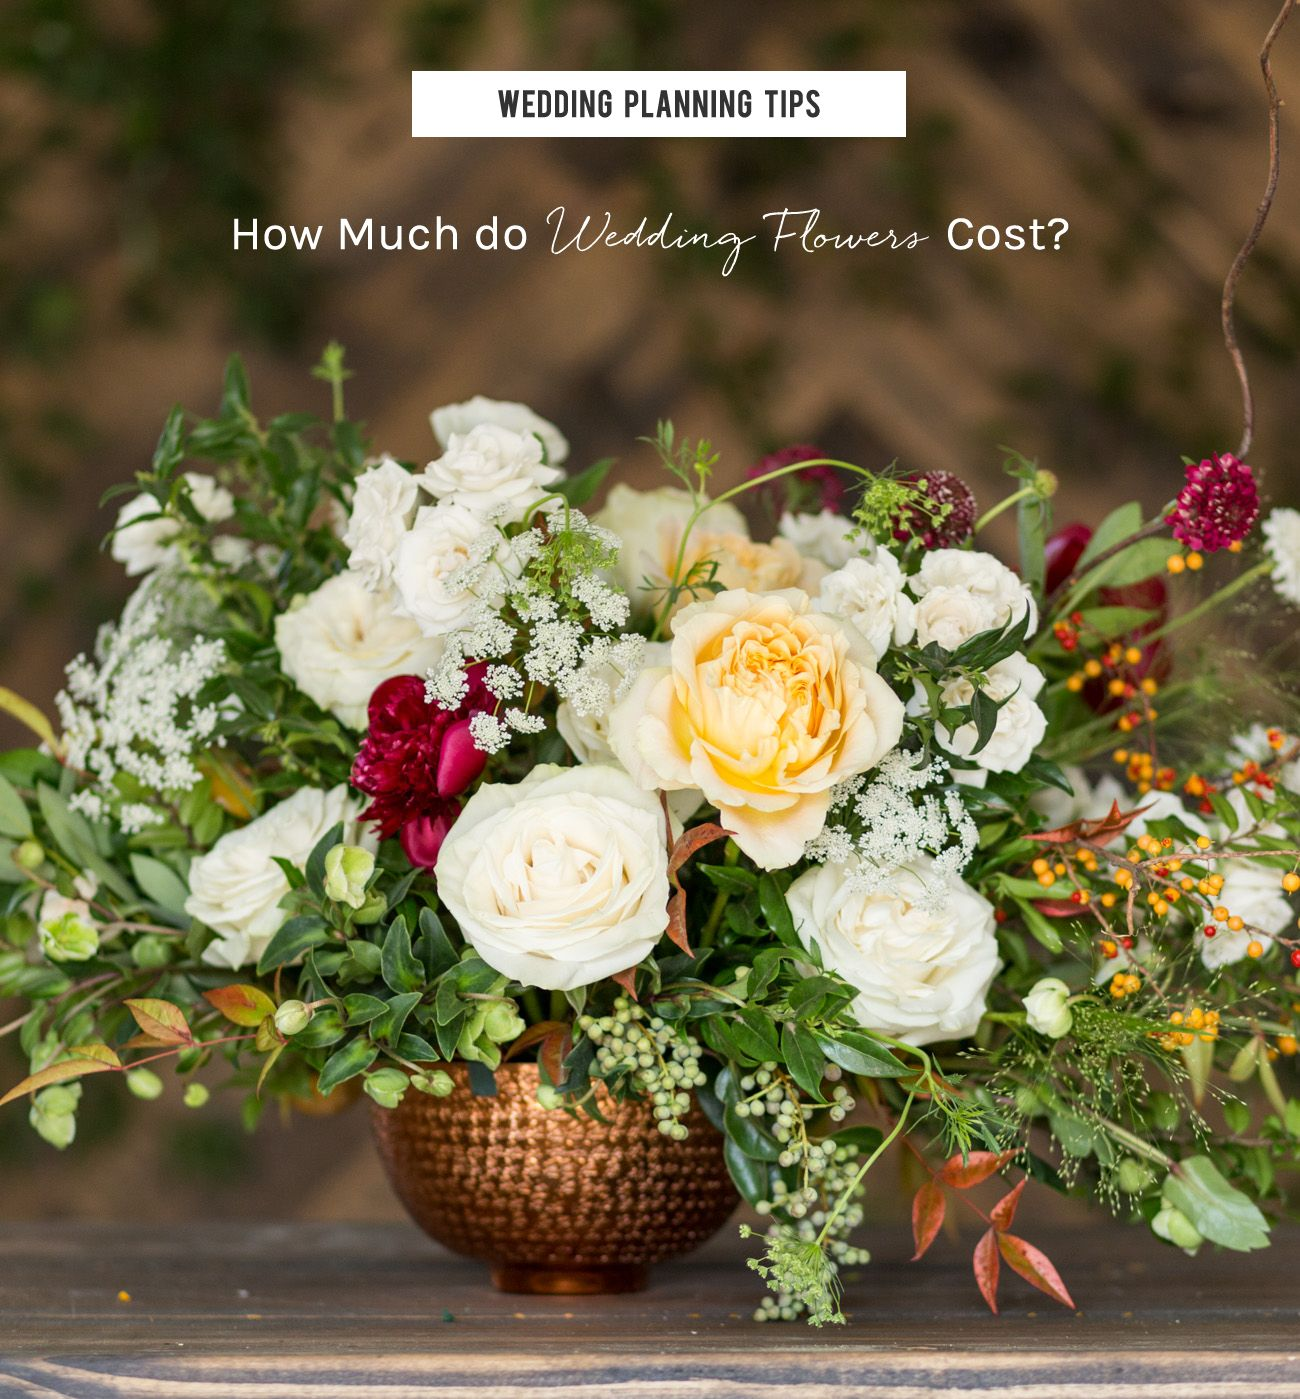 Wedding Planning Tips Budgeting for Centerpieces Flower